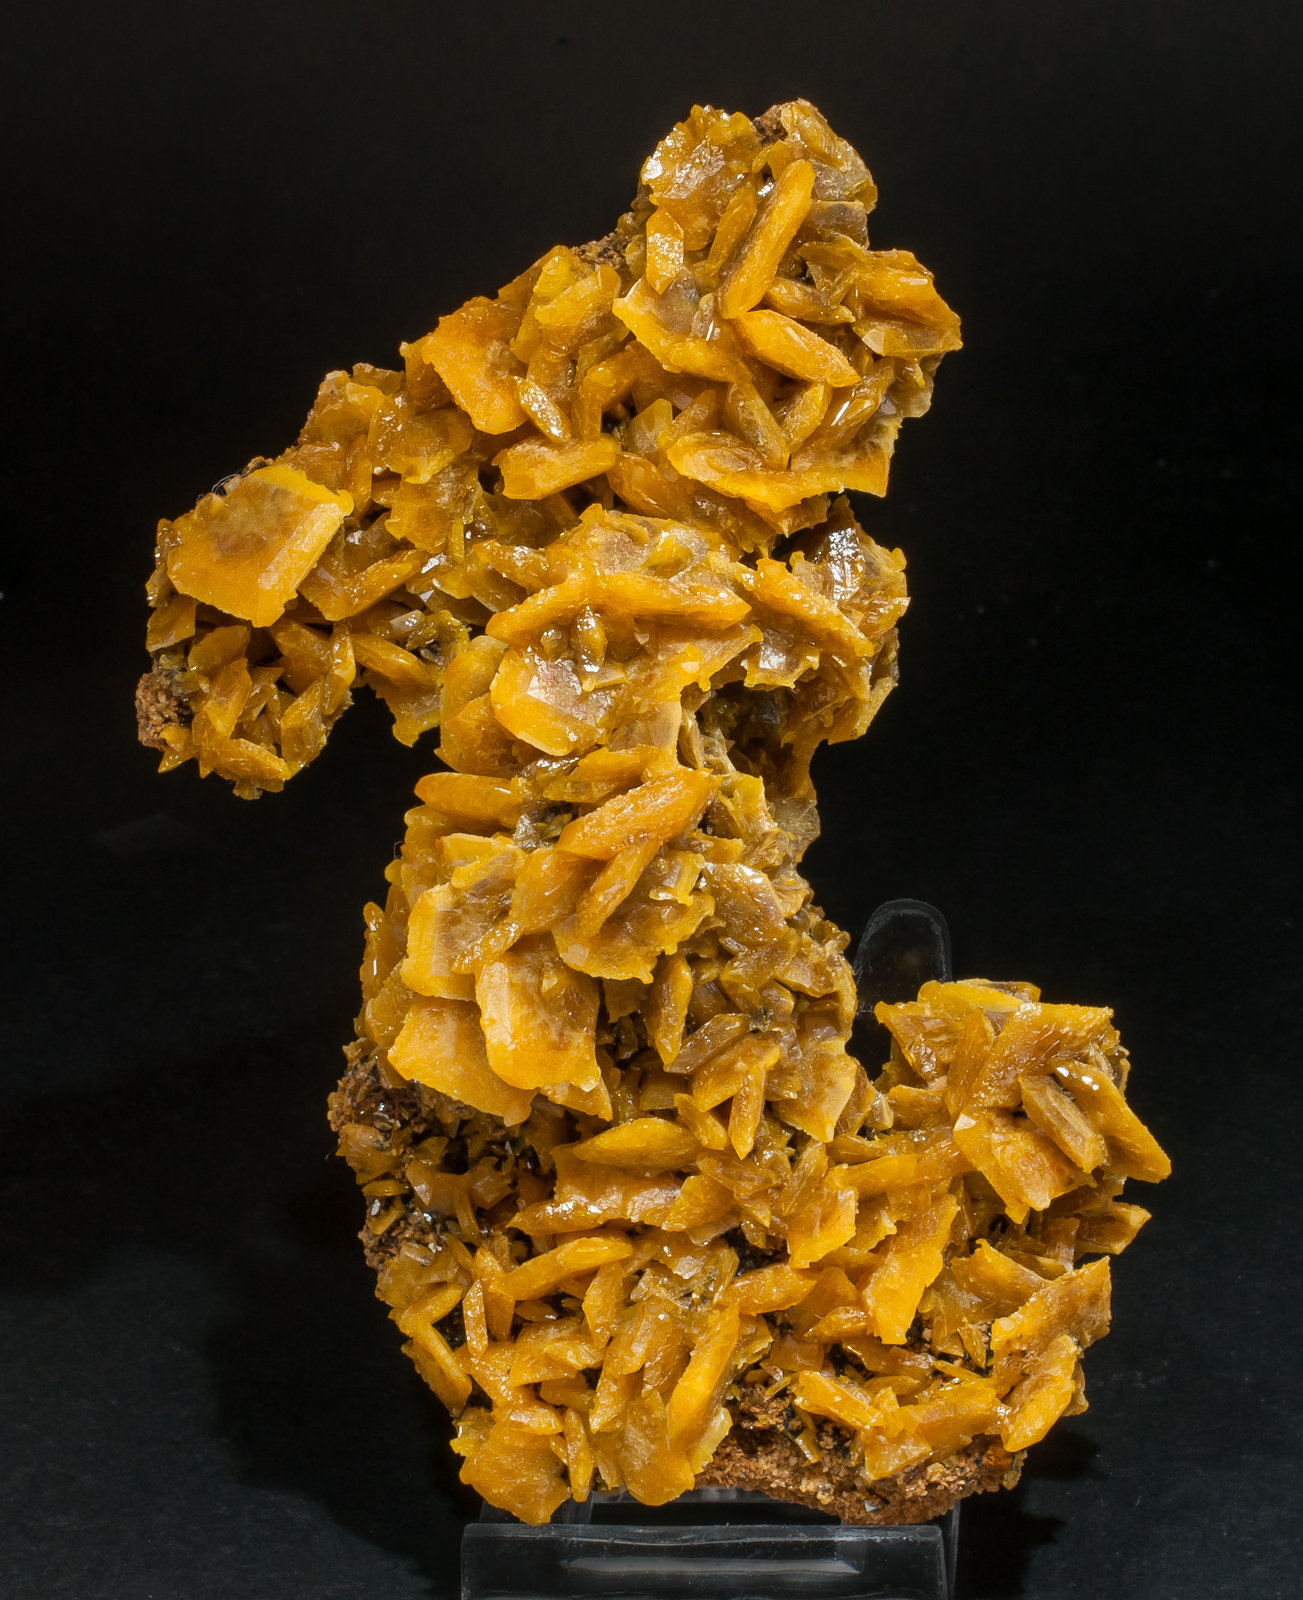 specimens/s_imagesAM3/Wulfenite-EA90AM3f.jpg